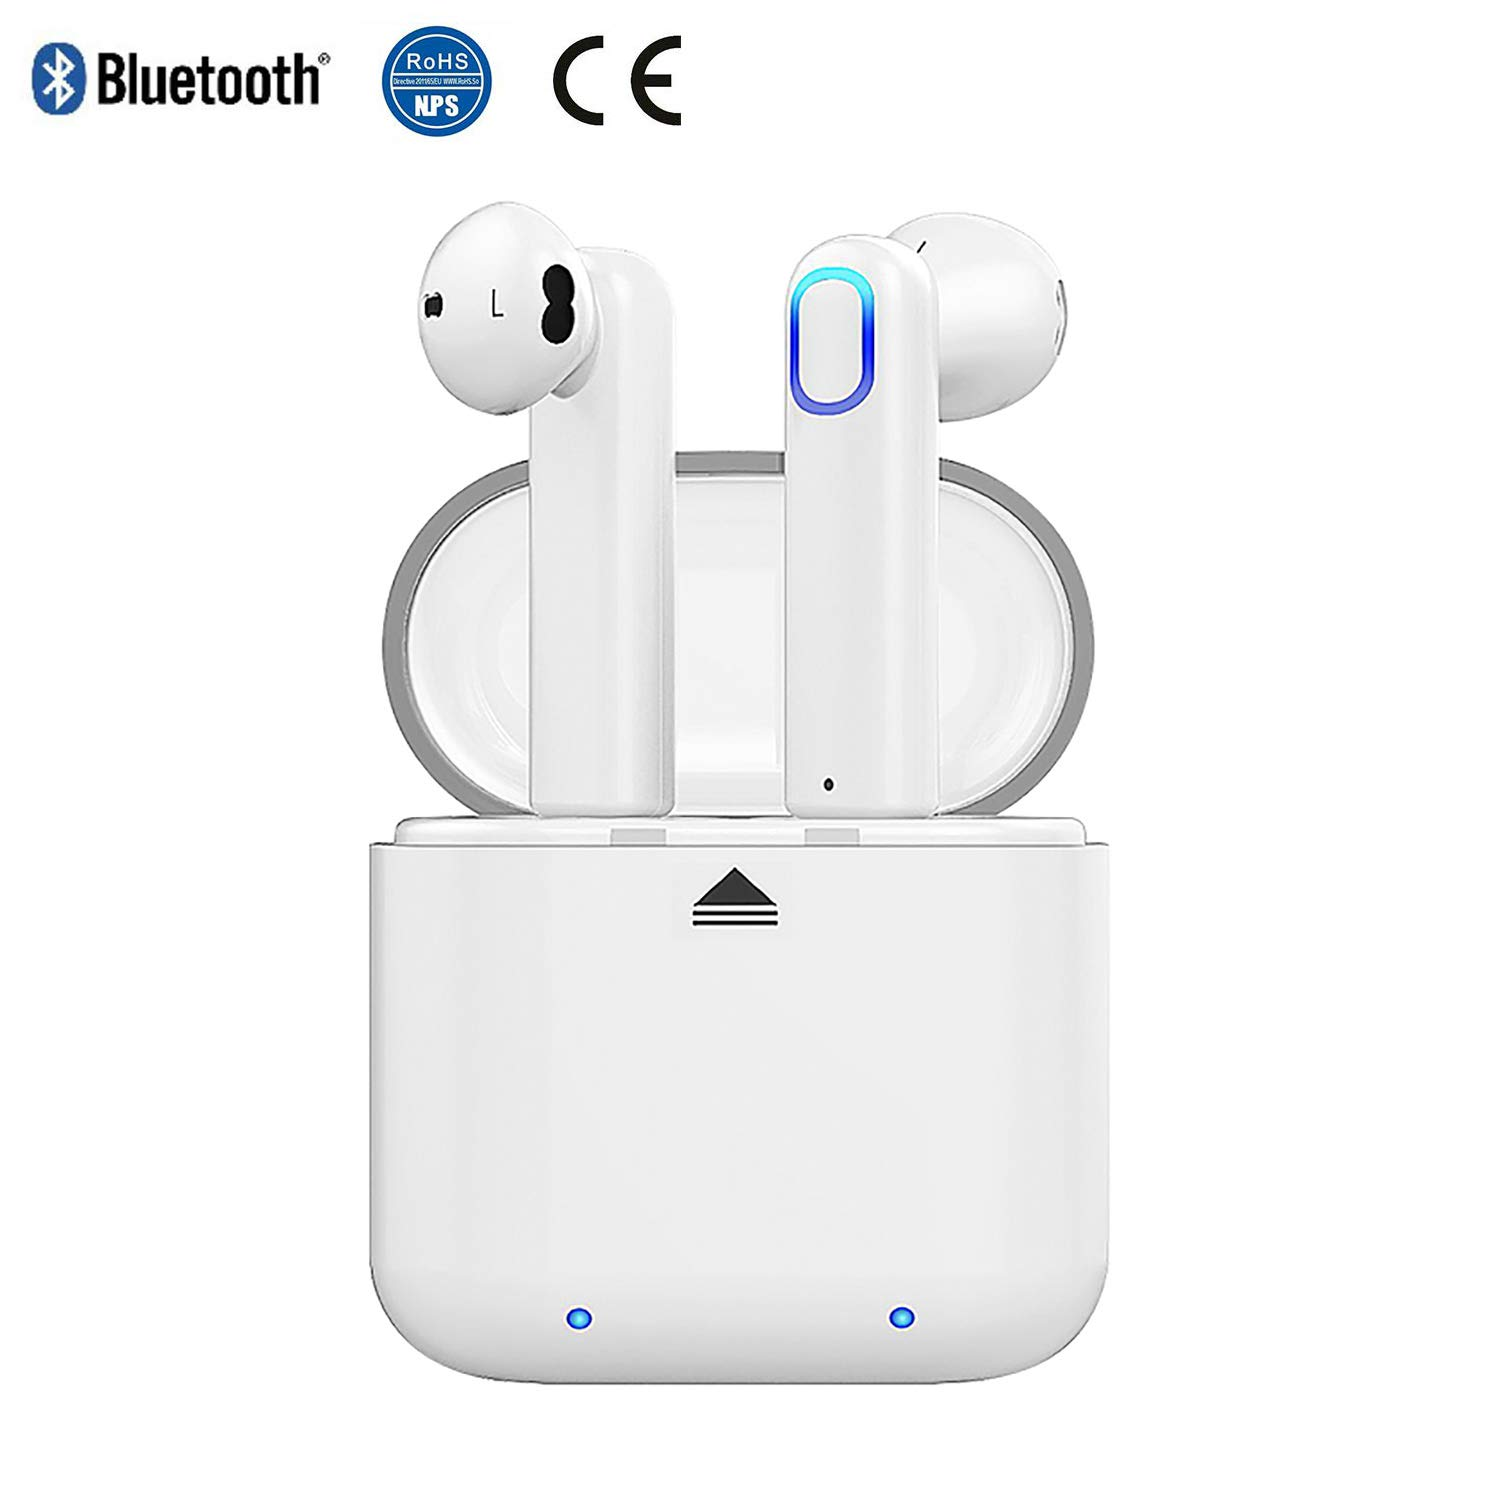 Bluetooth Earbuds Wireless Headset Headphones Invisible Cordless Rechargeable Earpiece for Laptop Smartphone Tablet Gaming Office Outdoor Voyager with HiFi 3D Stereo Sound White